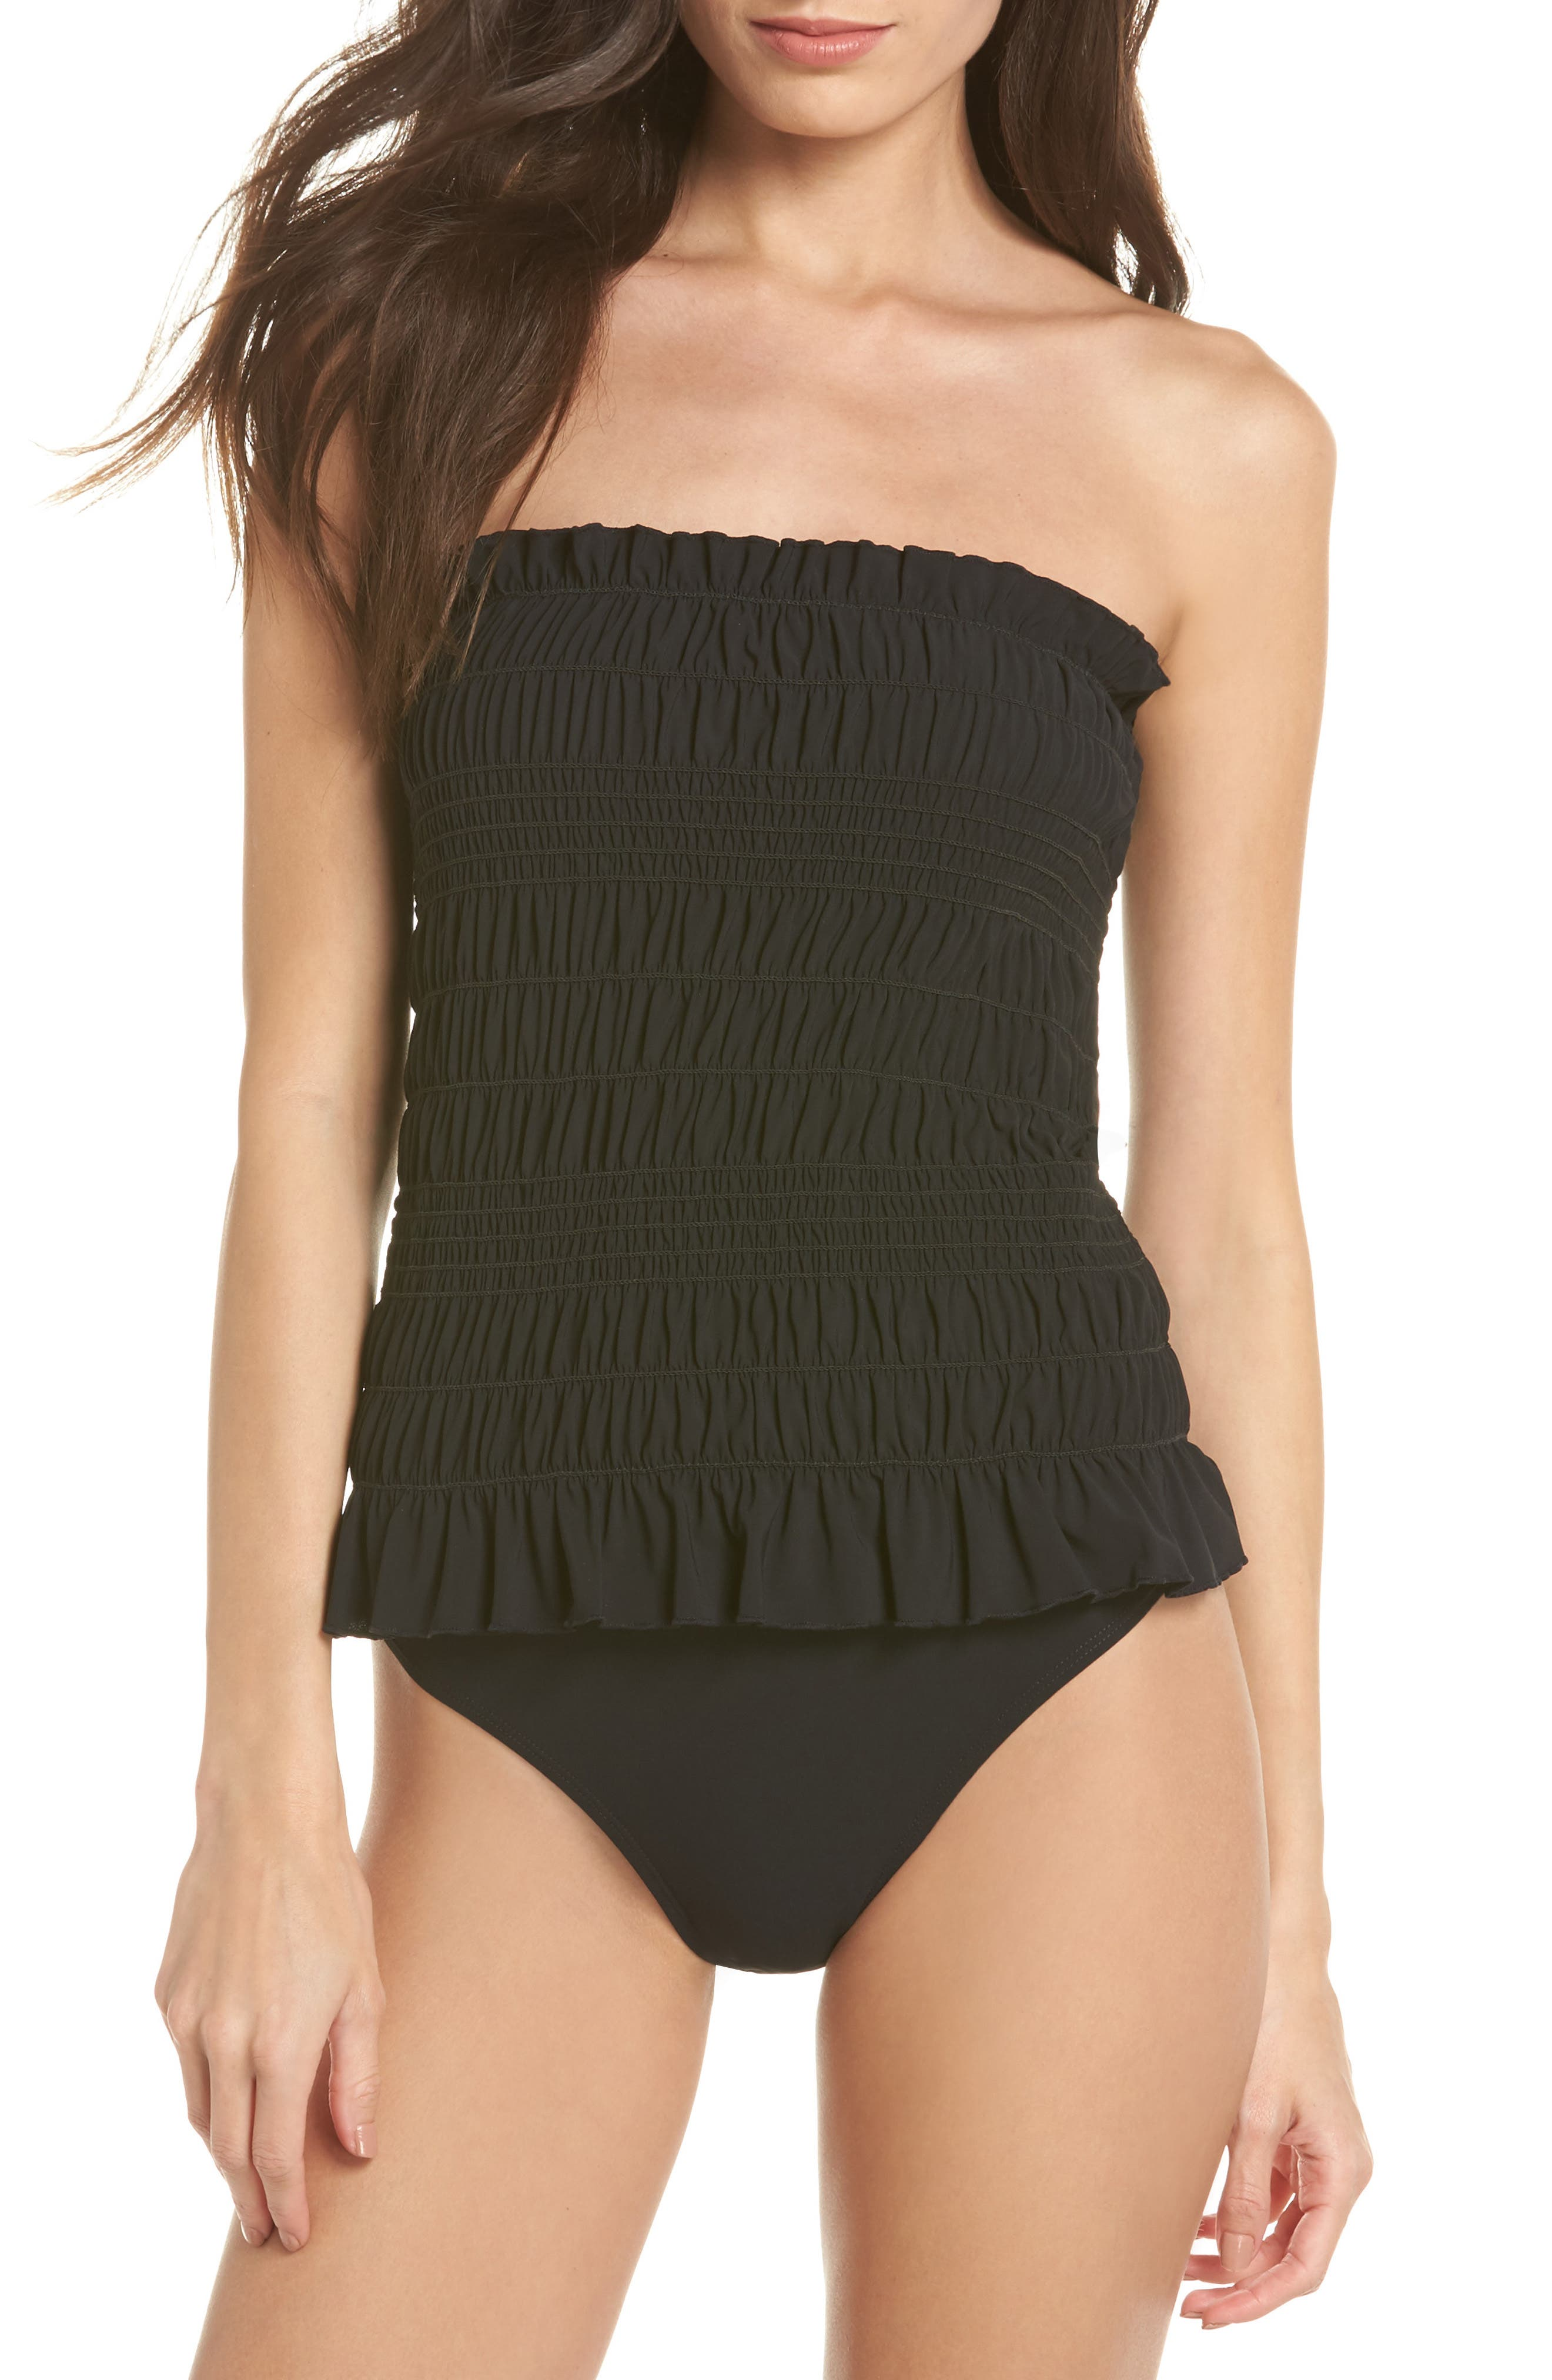 Costa Smocked One-Piece Swimsuit,                             Main thumbnail 1, color,                             009